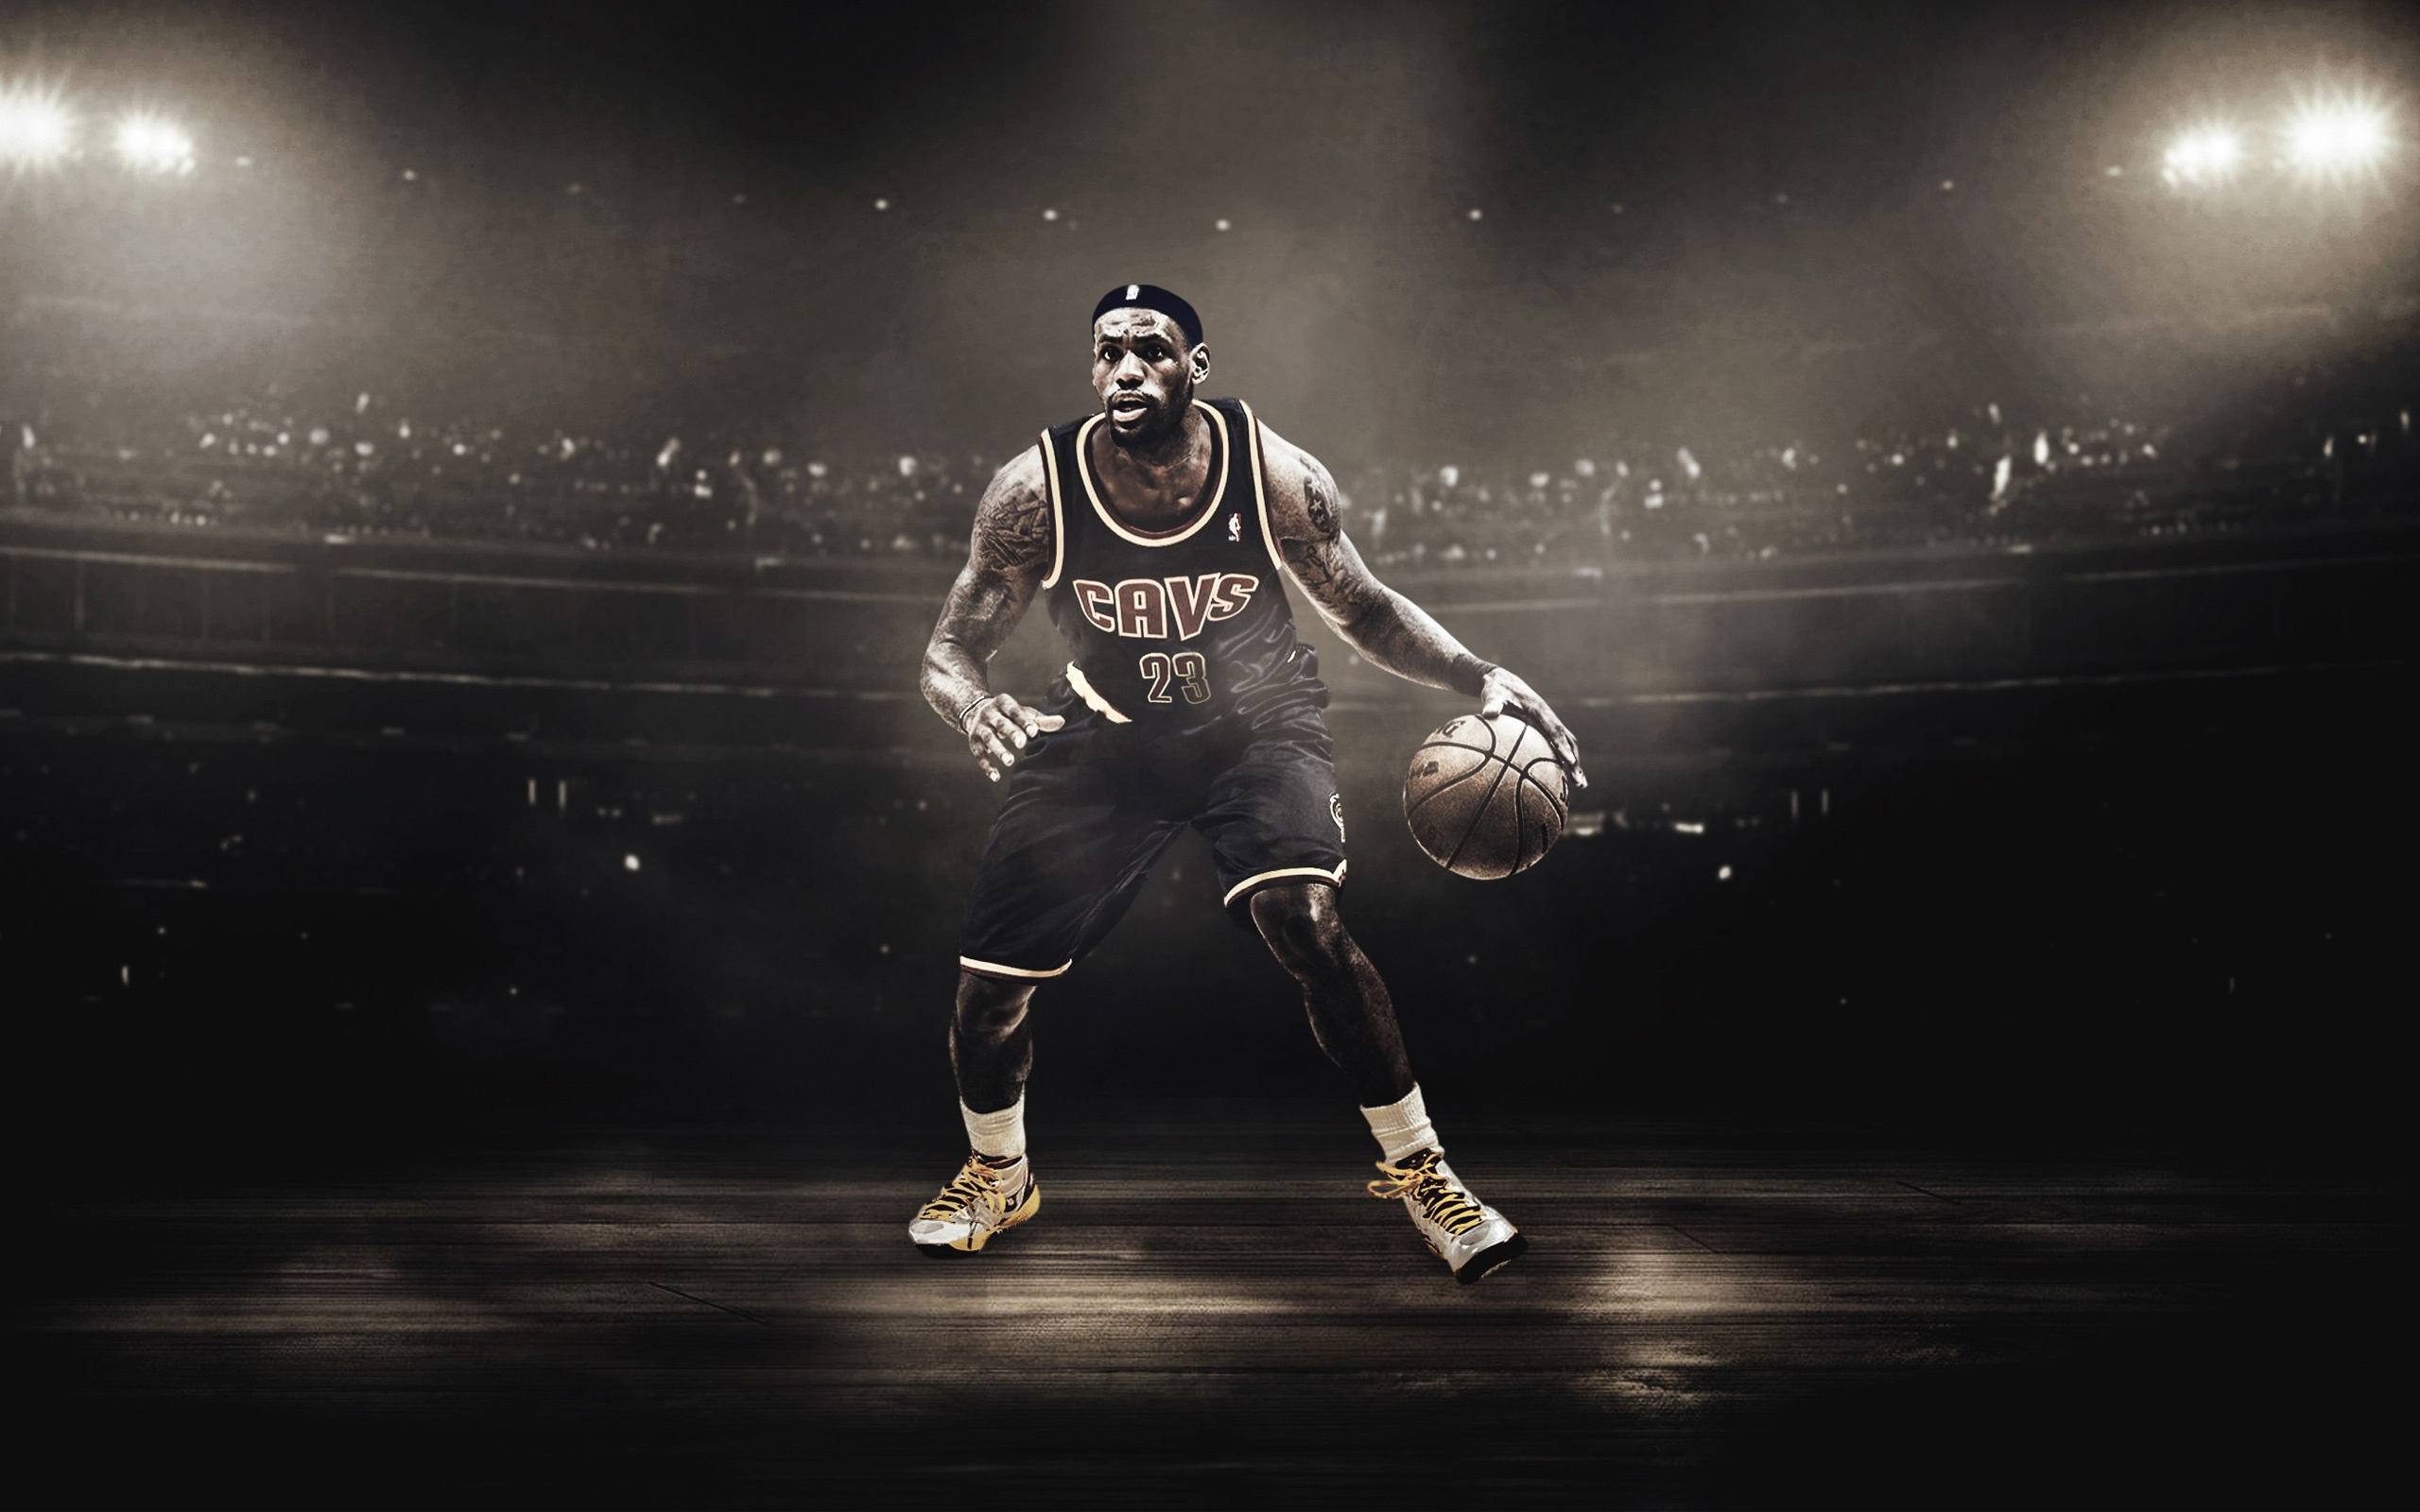 Lebron james wallpaper wallpapers for free download about 3041 lebron james basketball player voltagebd Images